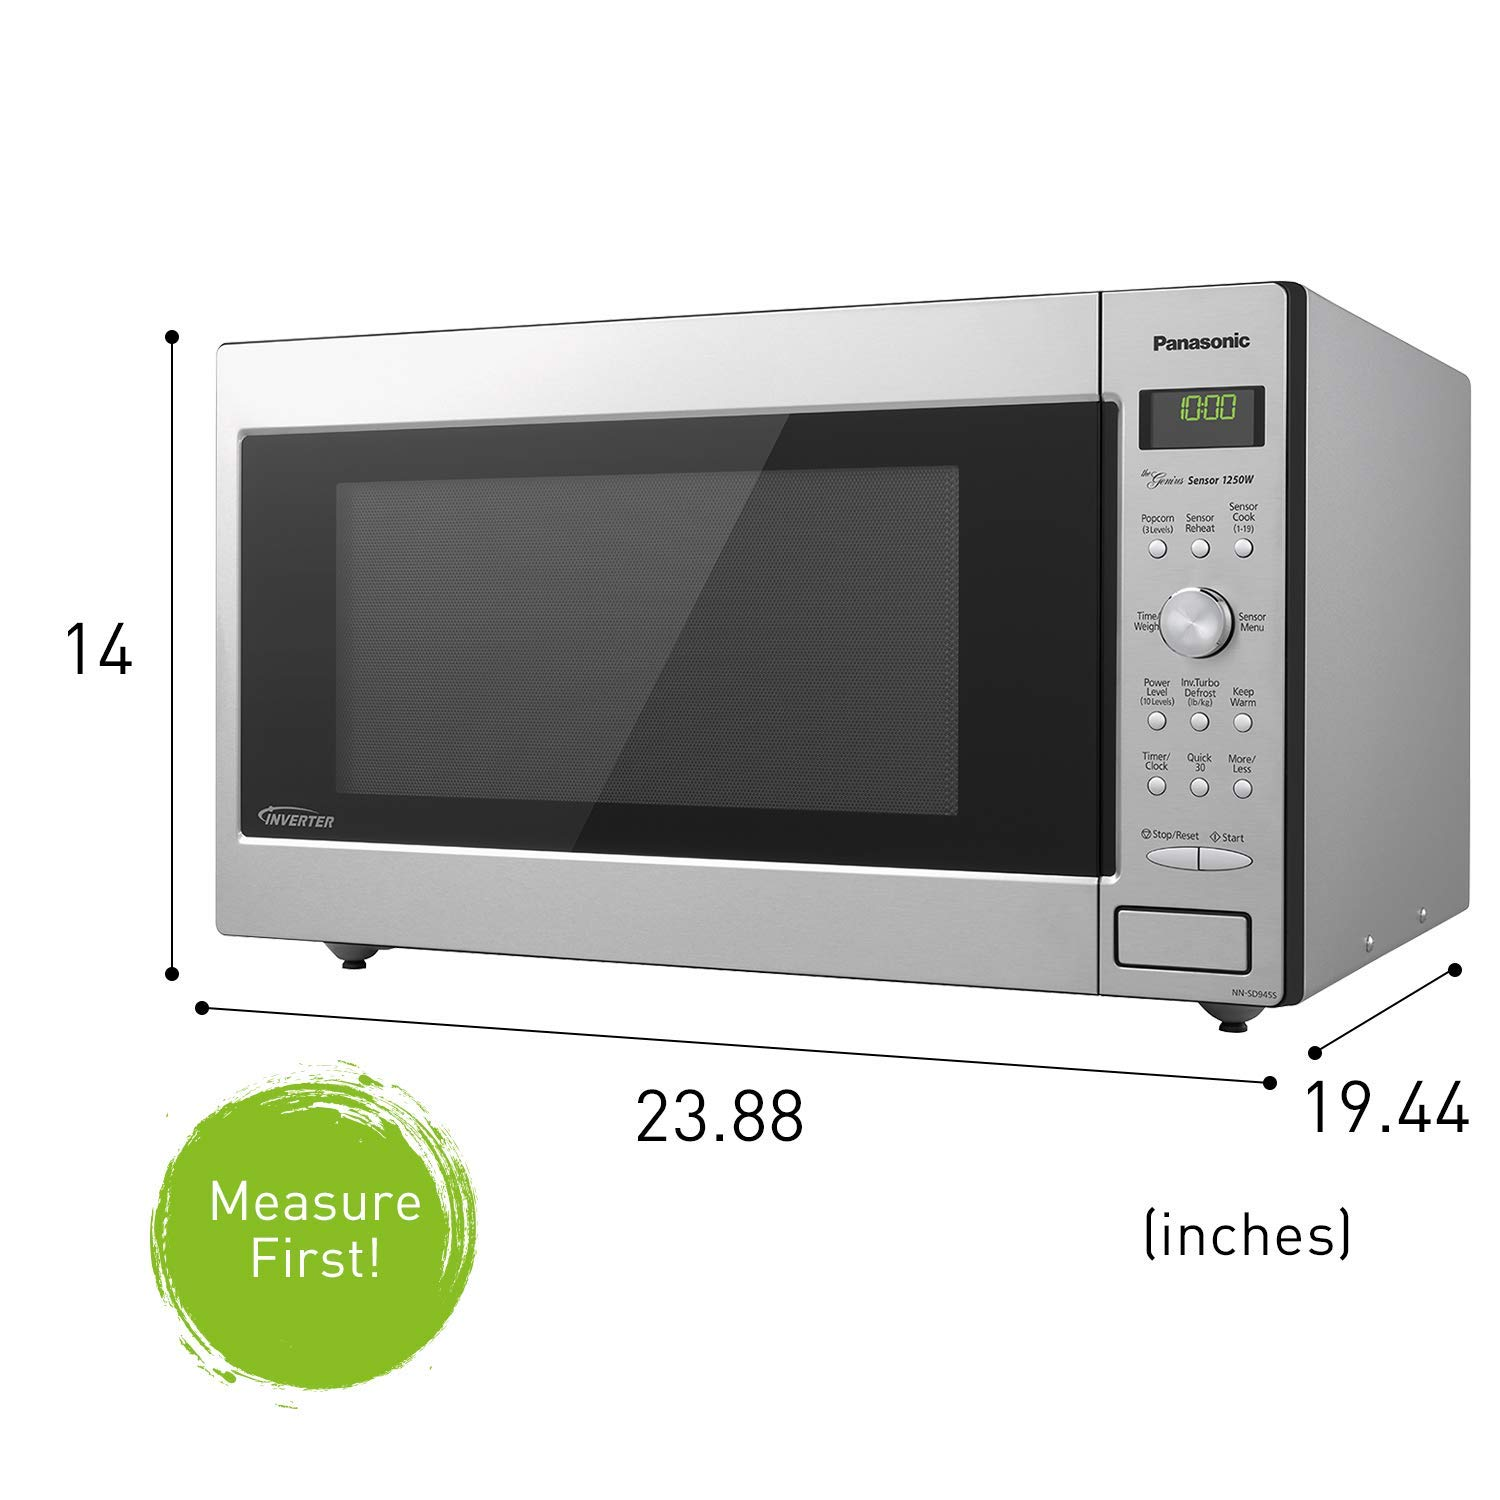 Amazon.com: Panasonic Microwave Oven NN-SD945S Stainless Steel Countertop/Built-In with Inverter Technology and Genius Sensor, 2.2 Cu.